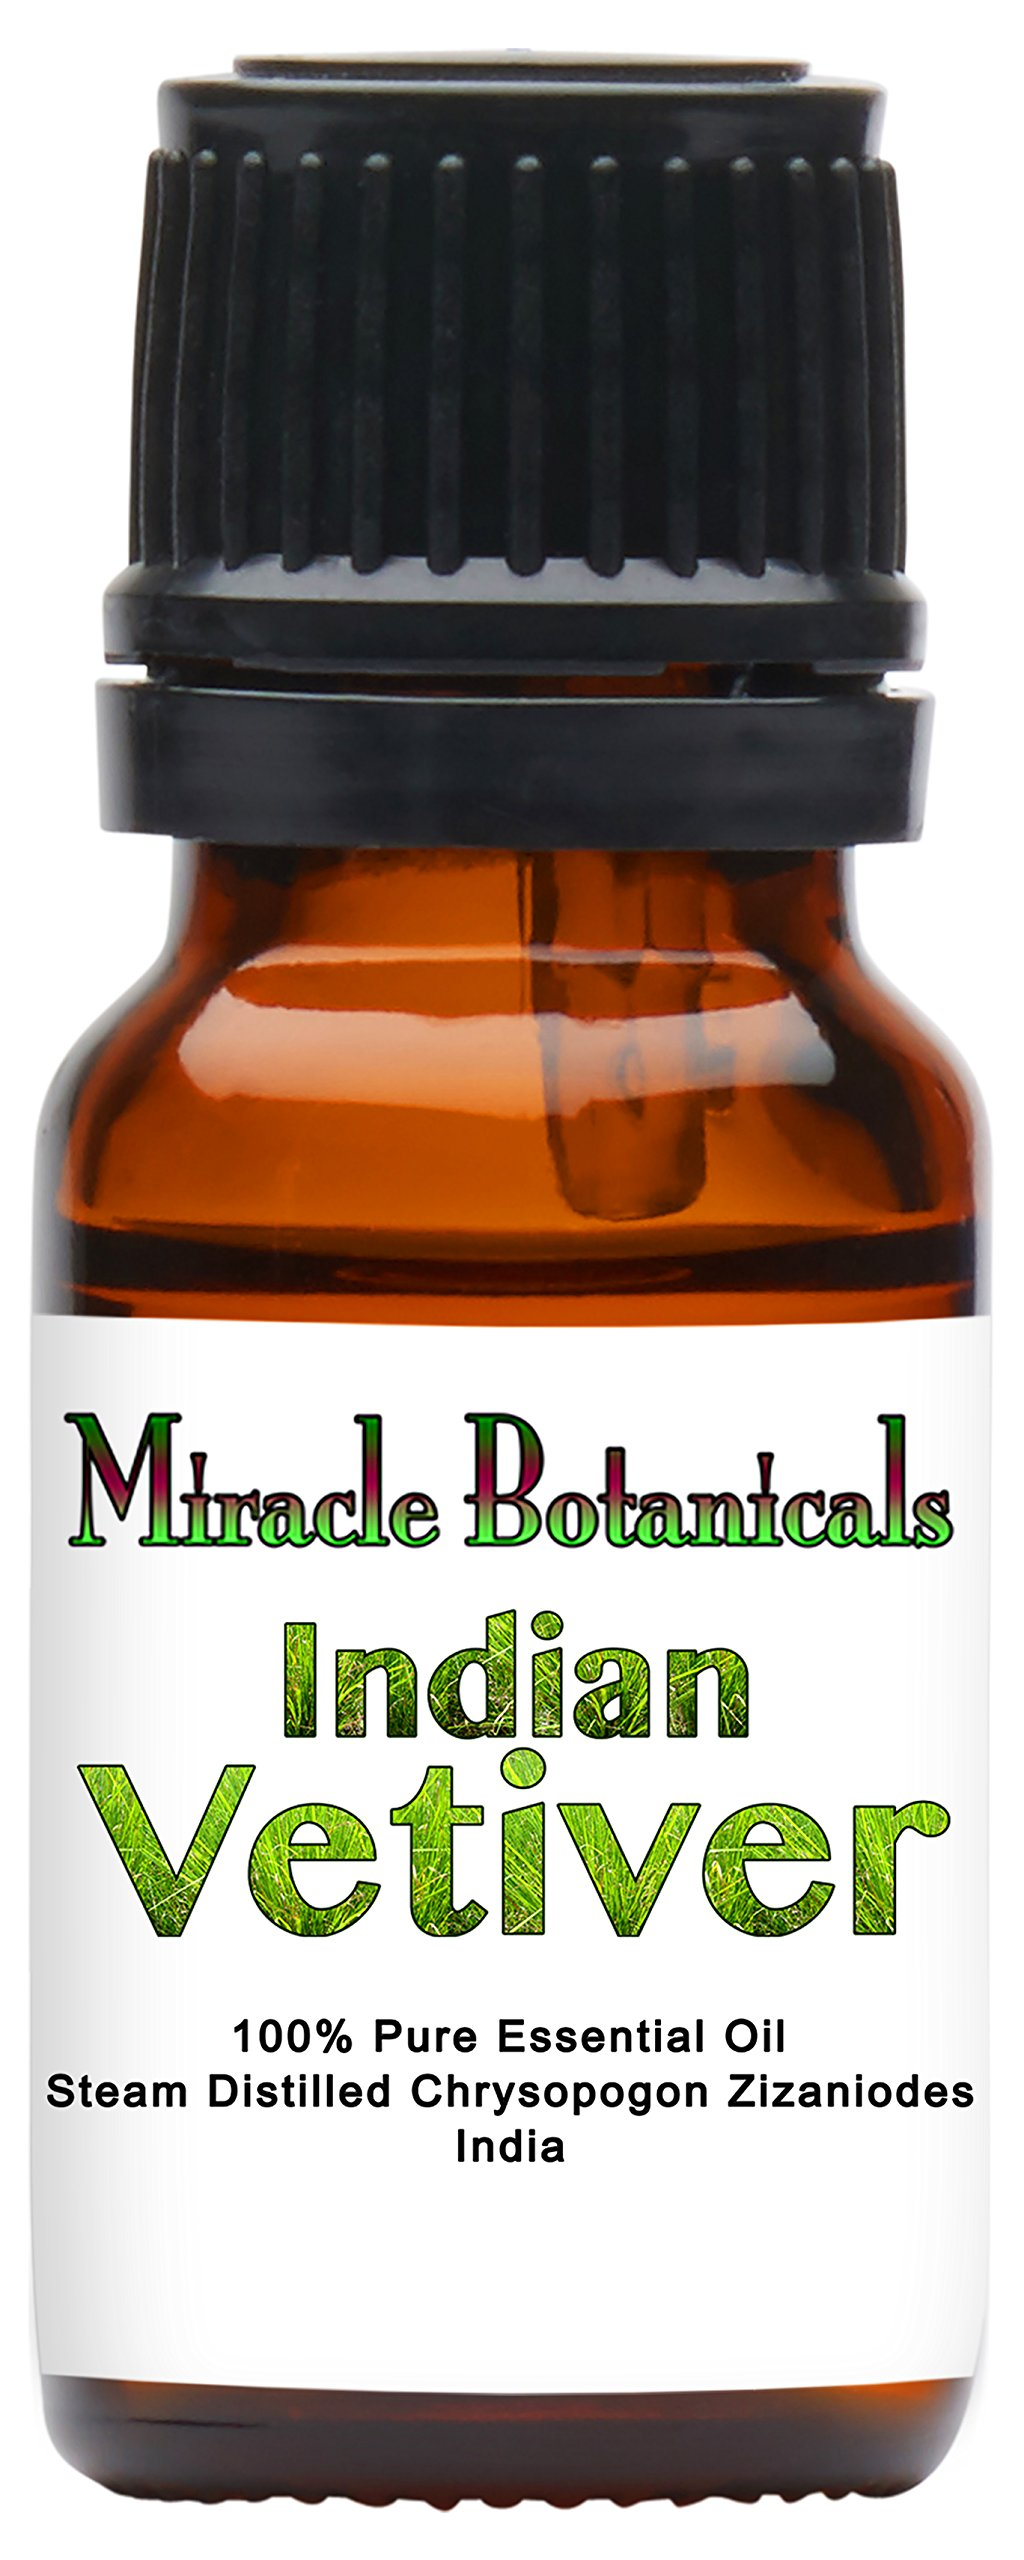 Miracle Botanicals Indian Vetiver Essential Oil - 100% Pure Chrysopogon Zizanioides - 10ml or 30ml Sizes - Therapeutic Grade 10ml